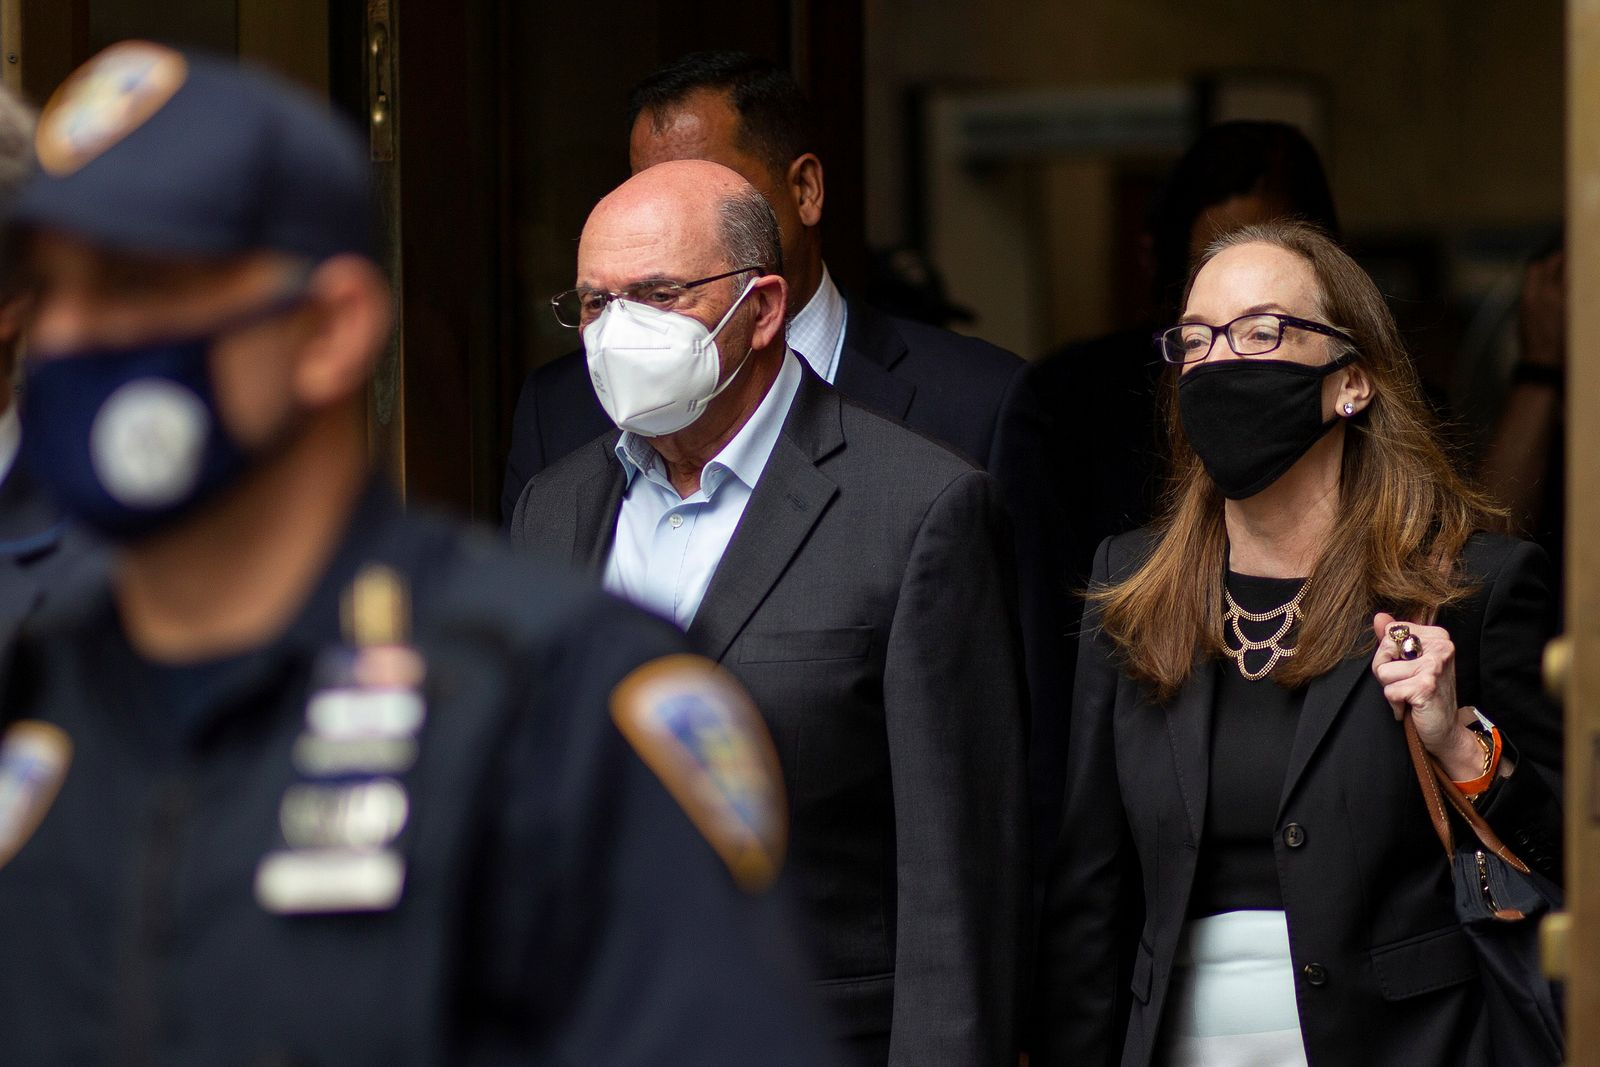 Trump Organization chief financial officer Allen Weisselberg exits following his arraignment hearing in New York State Supreme Court in New York